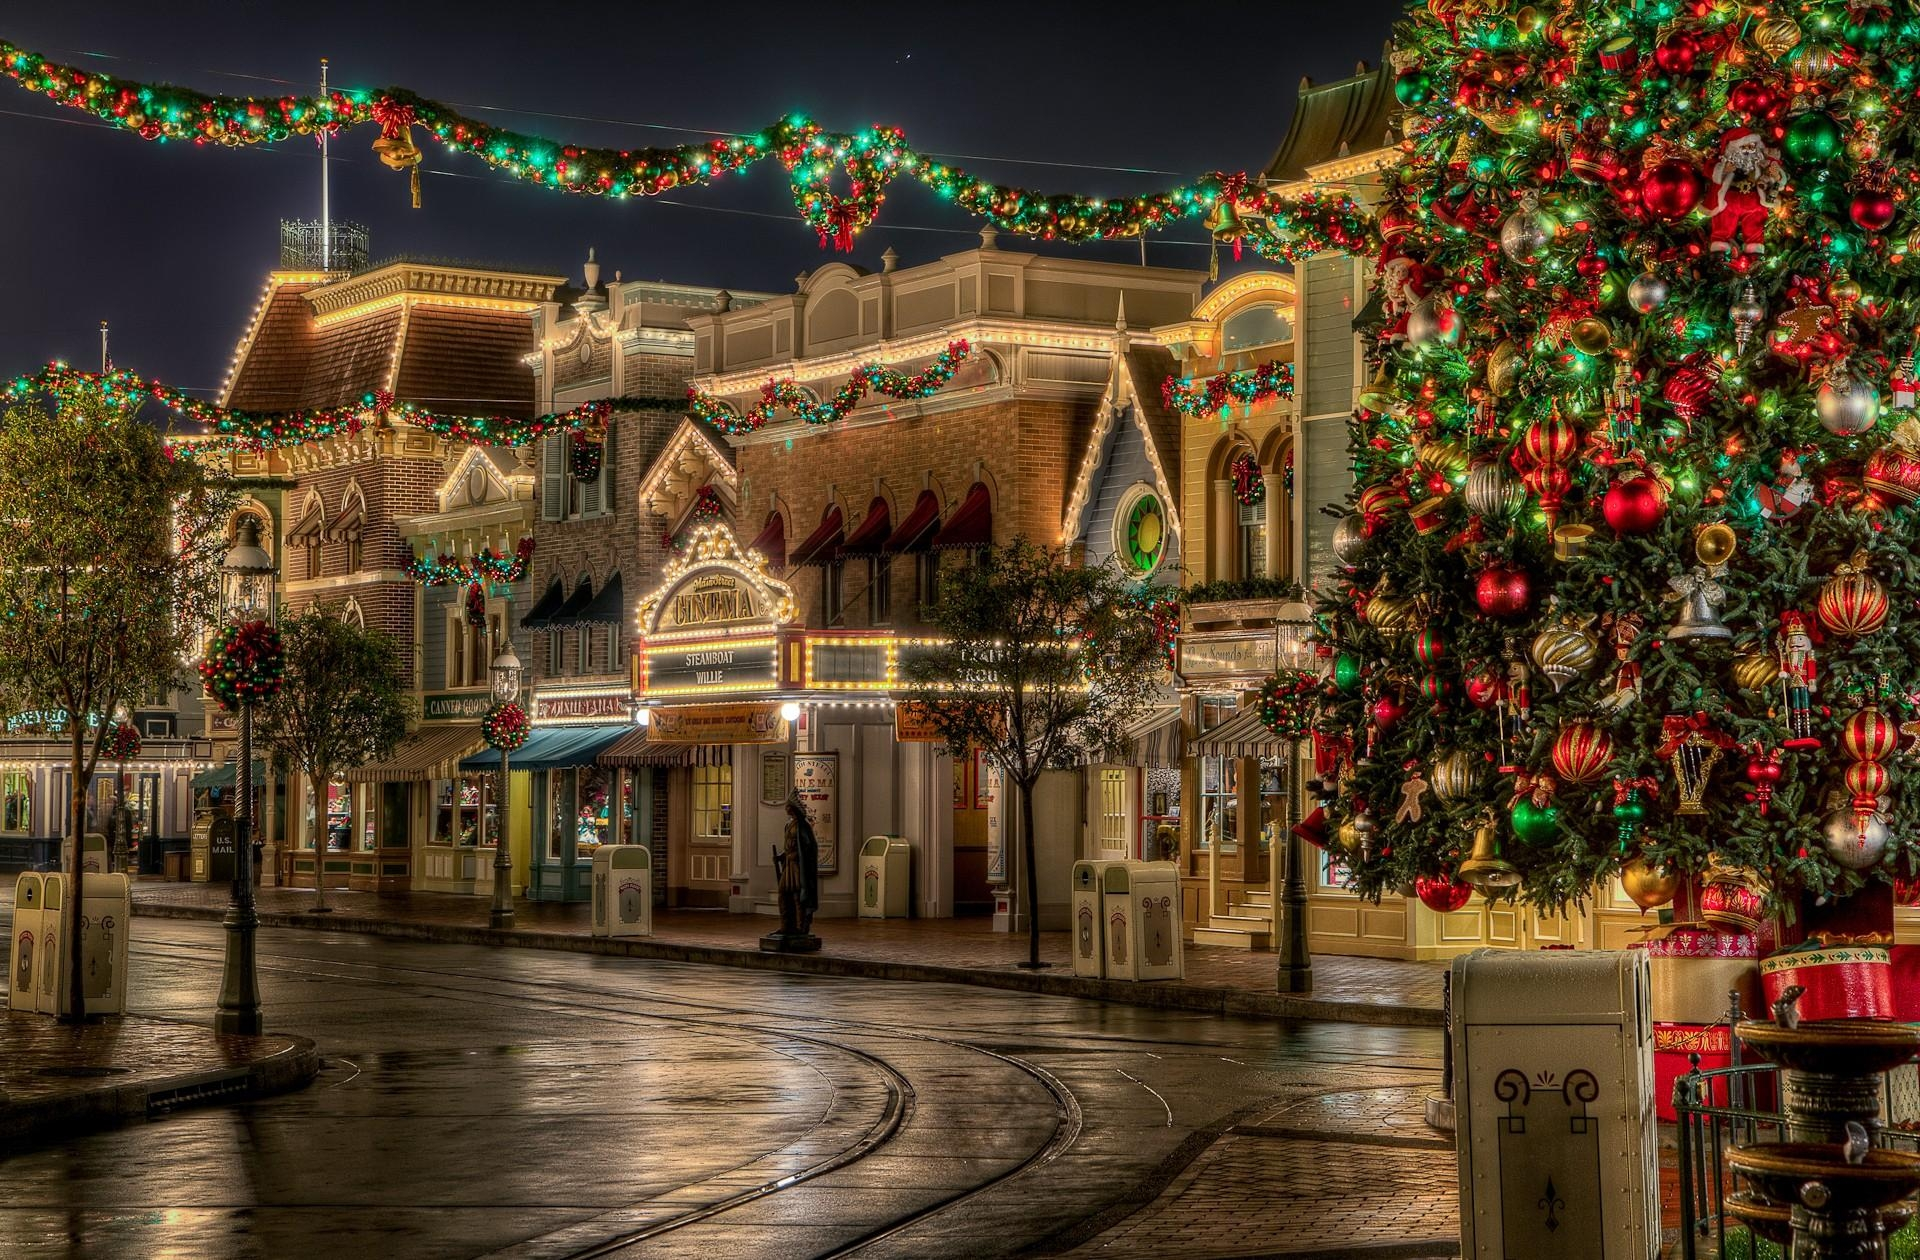 142967 download wallpaper Holidays, Lights, Christmas, Holiday, Beauty, Christmas Tree, Street, Presents, Gifts screensavers and pictures for free